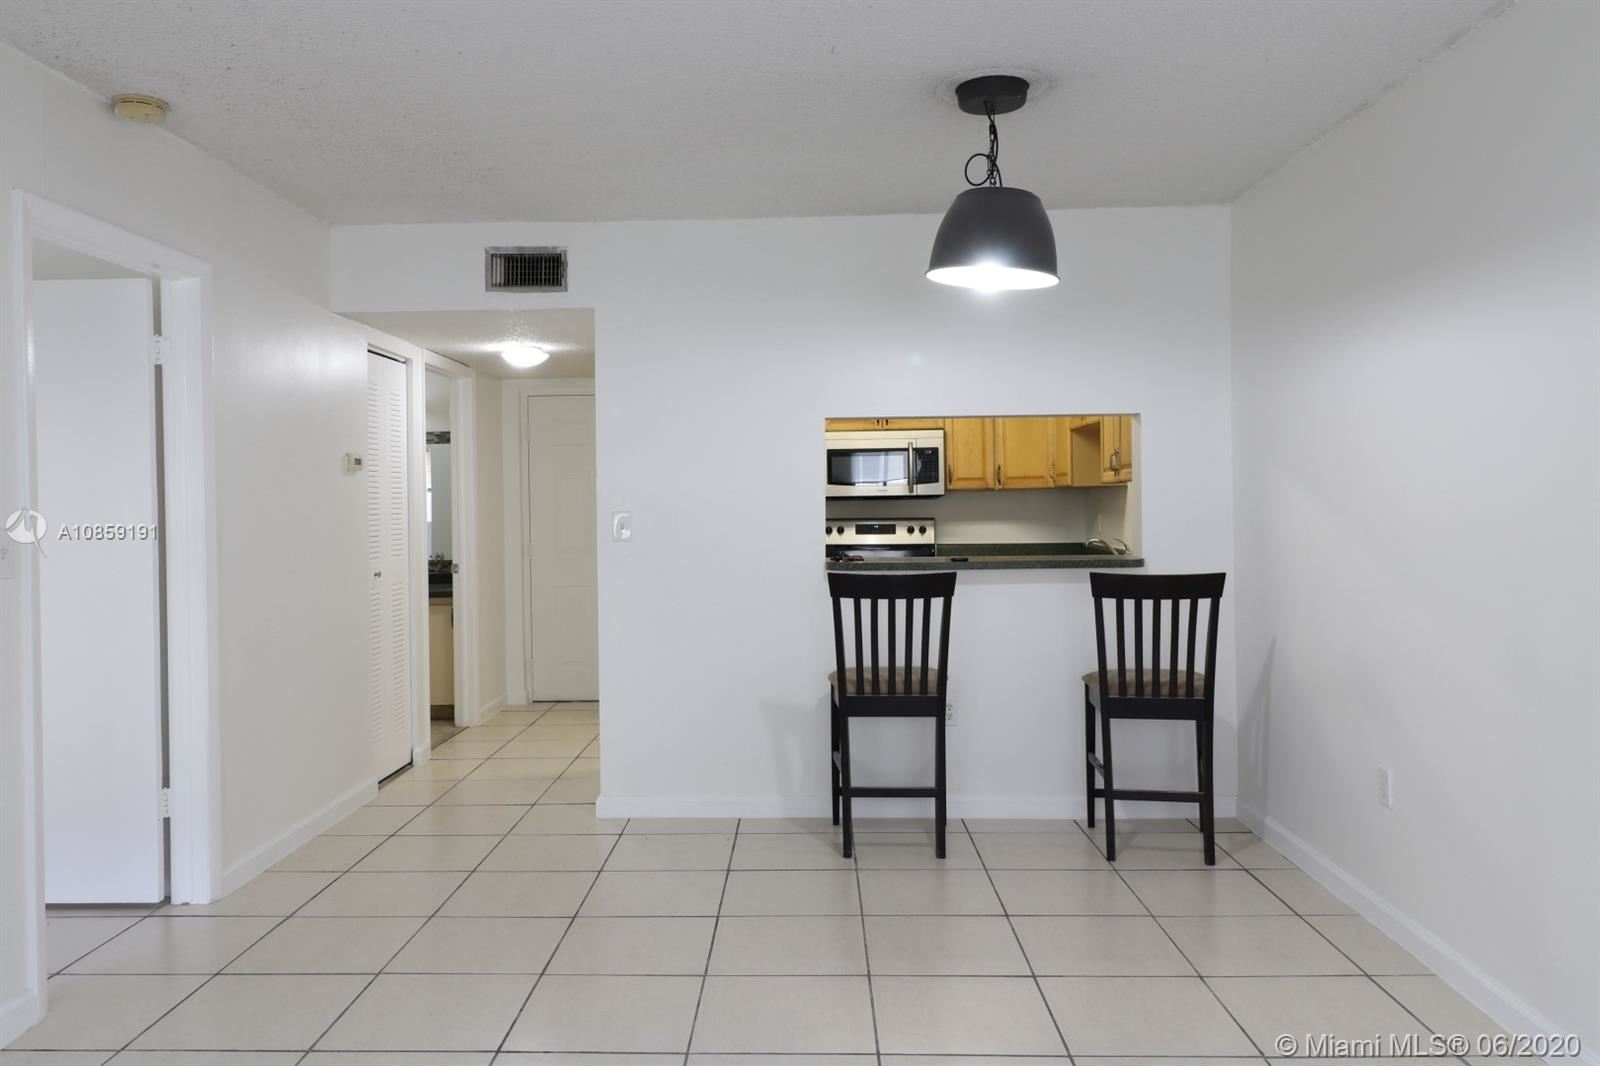 13820 SW 112th St #103, Miami, FL 33186 - #: A10859191